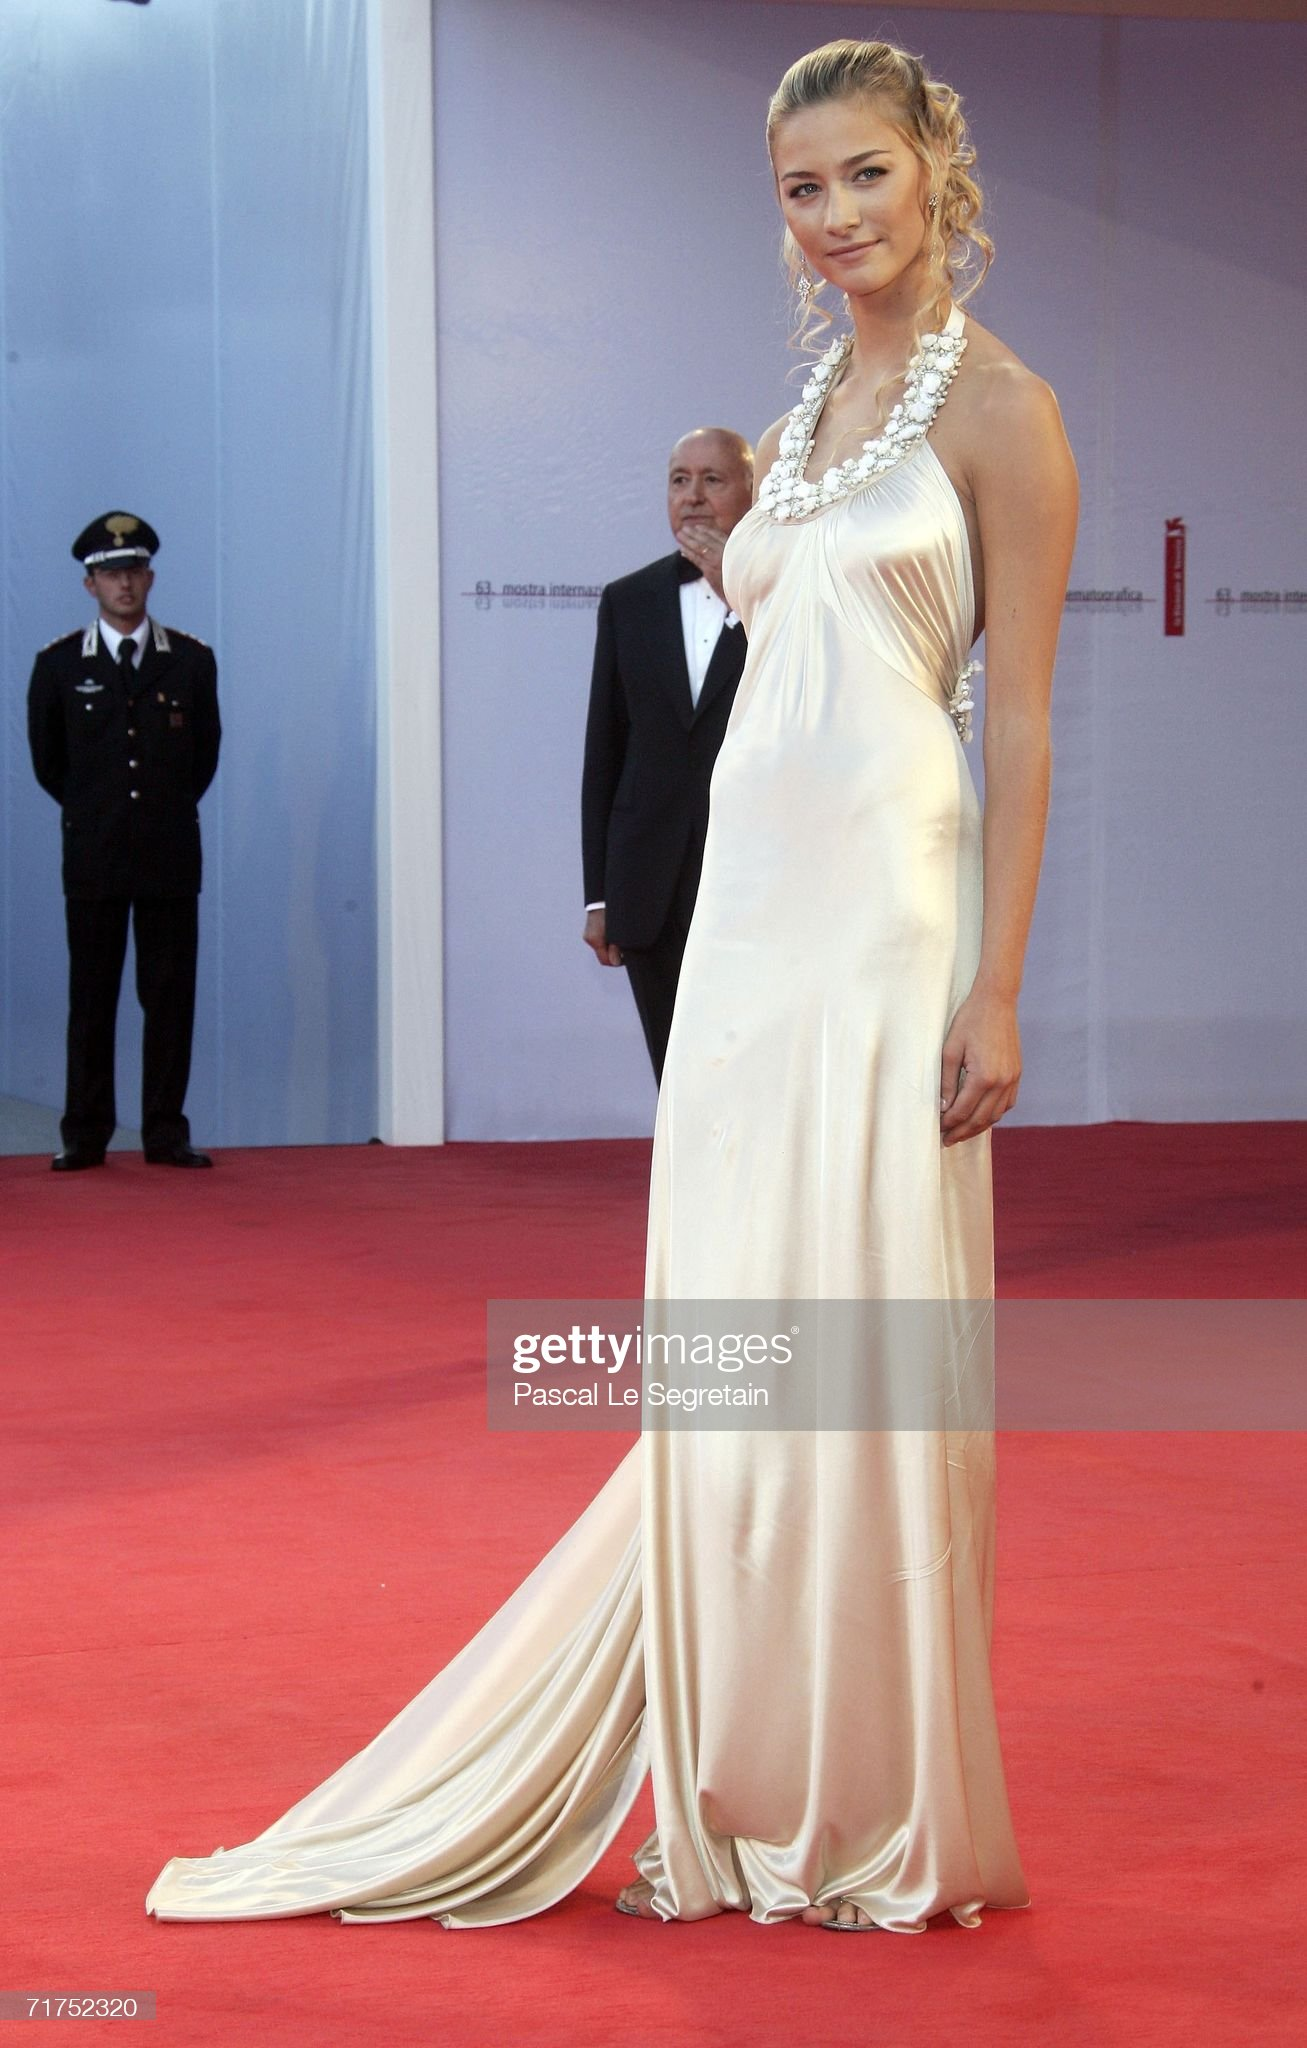 63rd Venice Film Festival: Opening Ceremony and 'The Black Dahlia' Premiere : News Photo